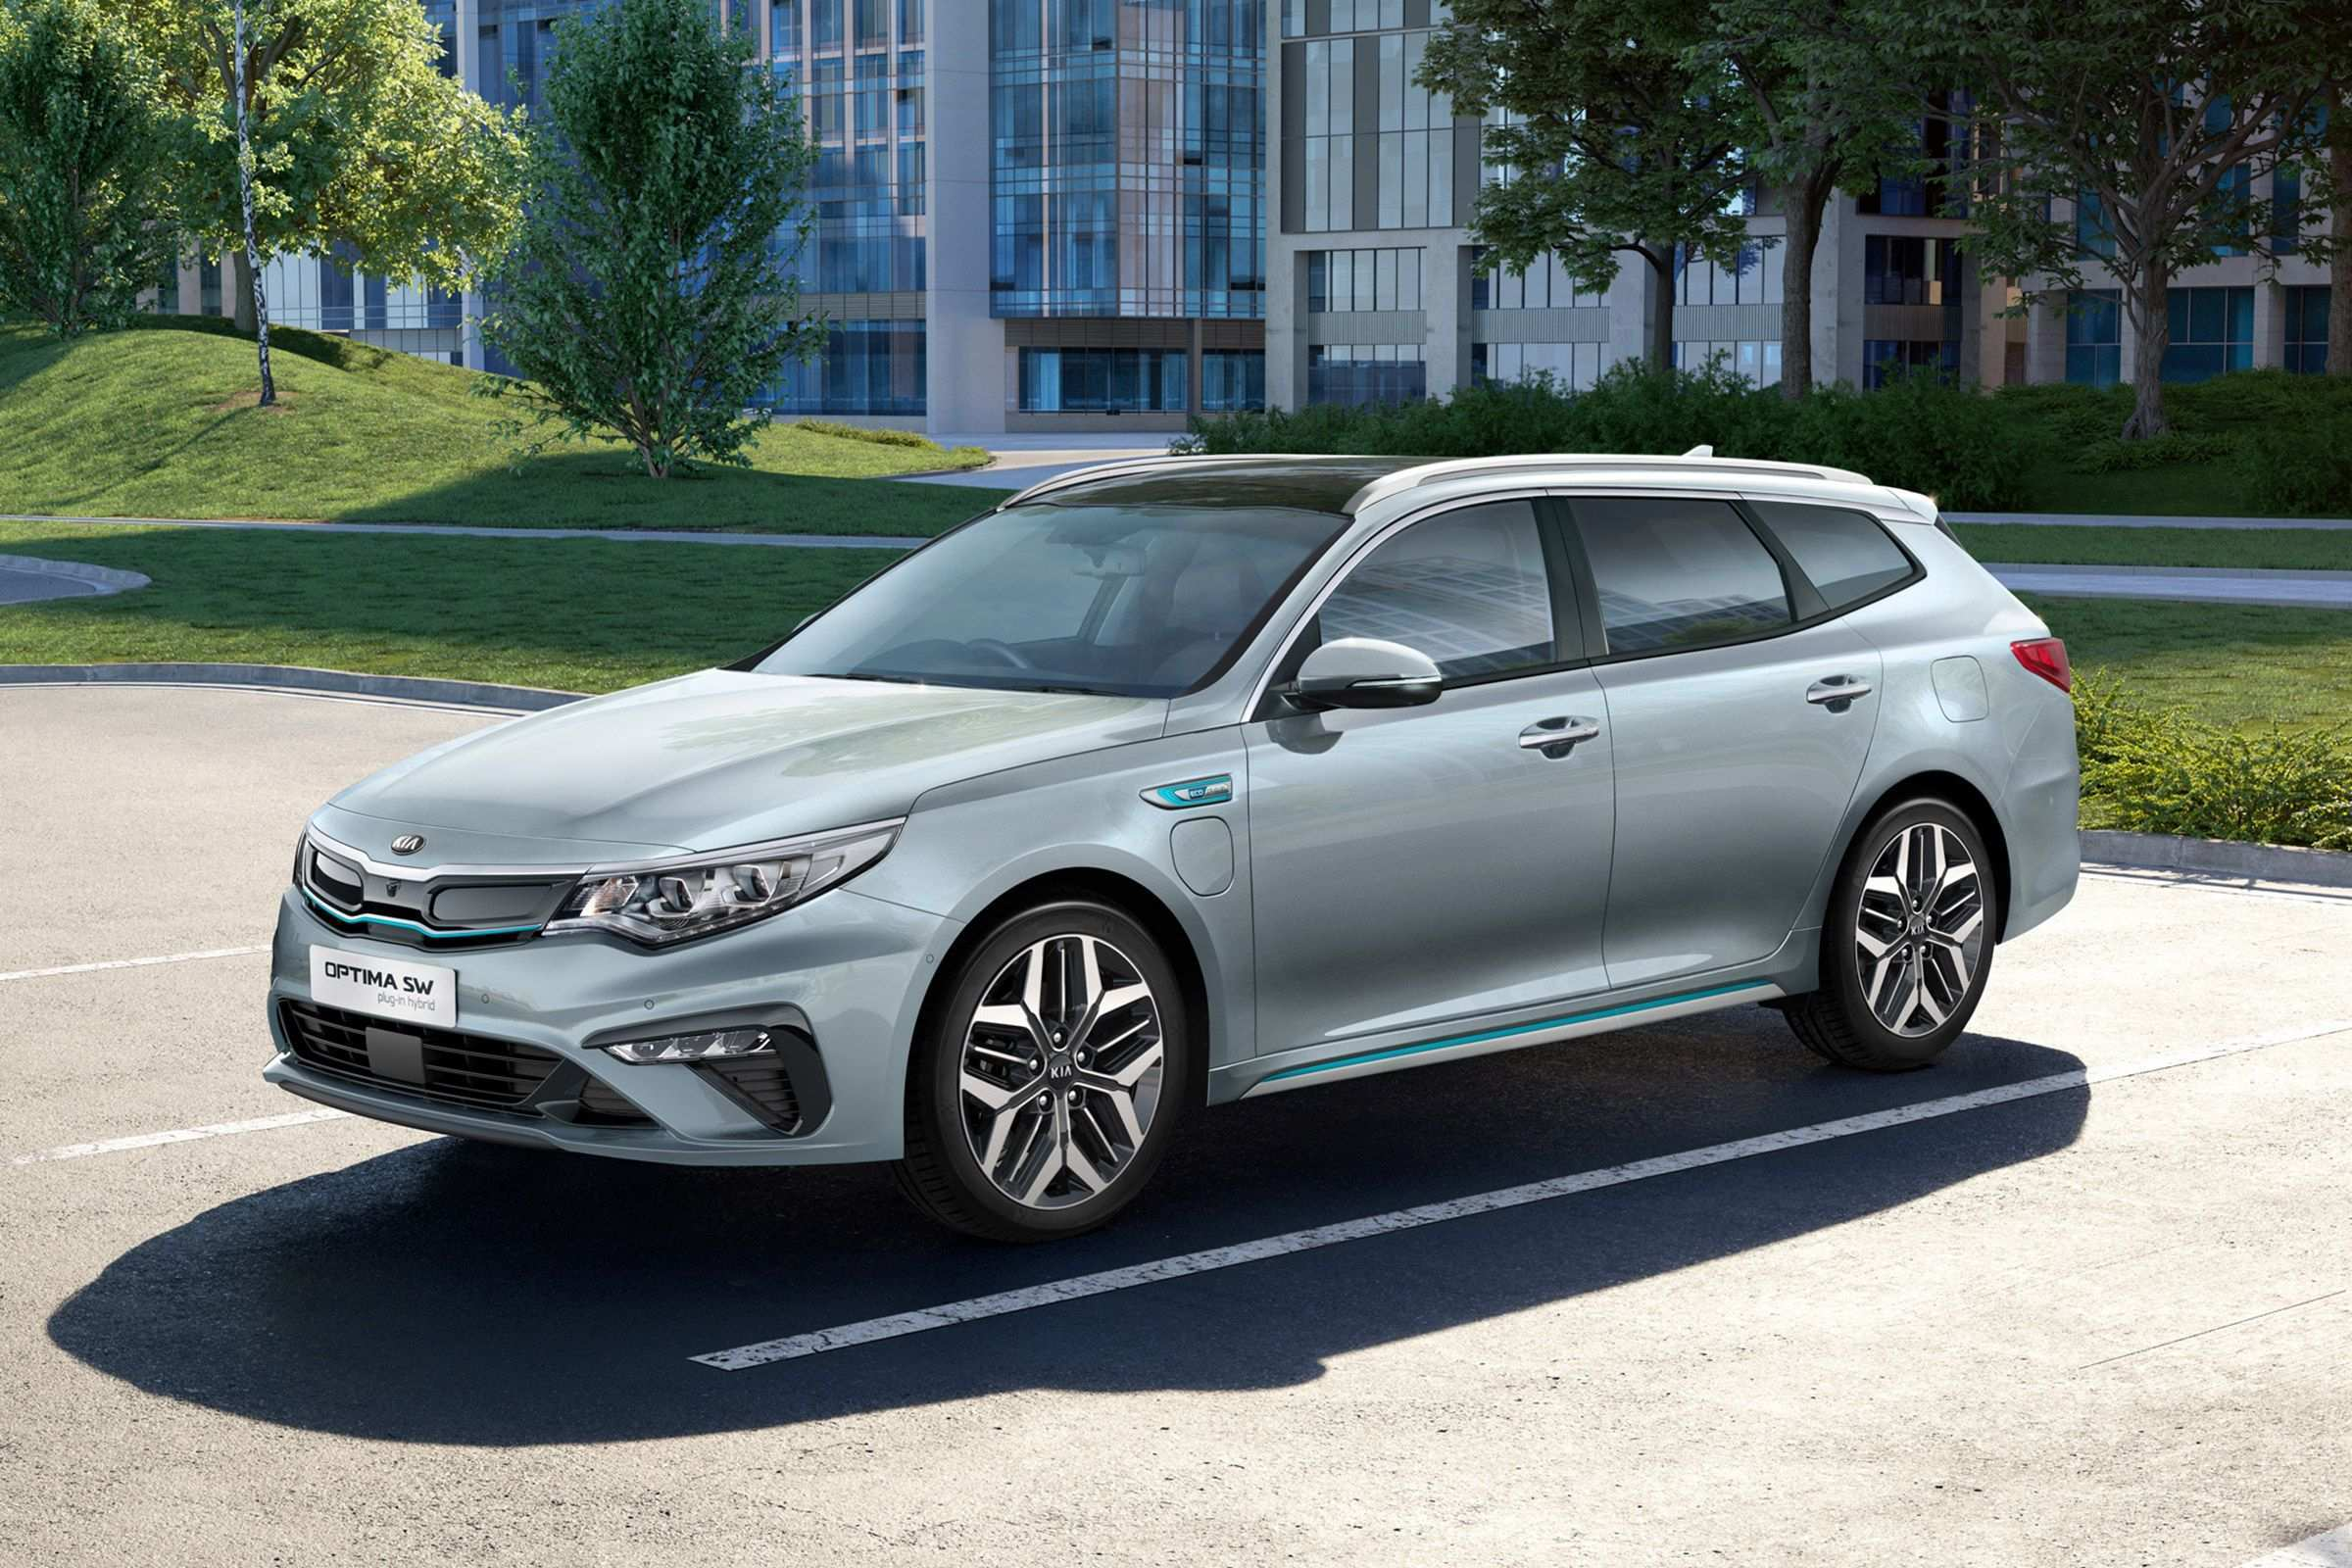 62 All New Best Kia 2019 Hybrid Review Reviews with Best Kia 2019 Hybrid Review